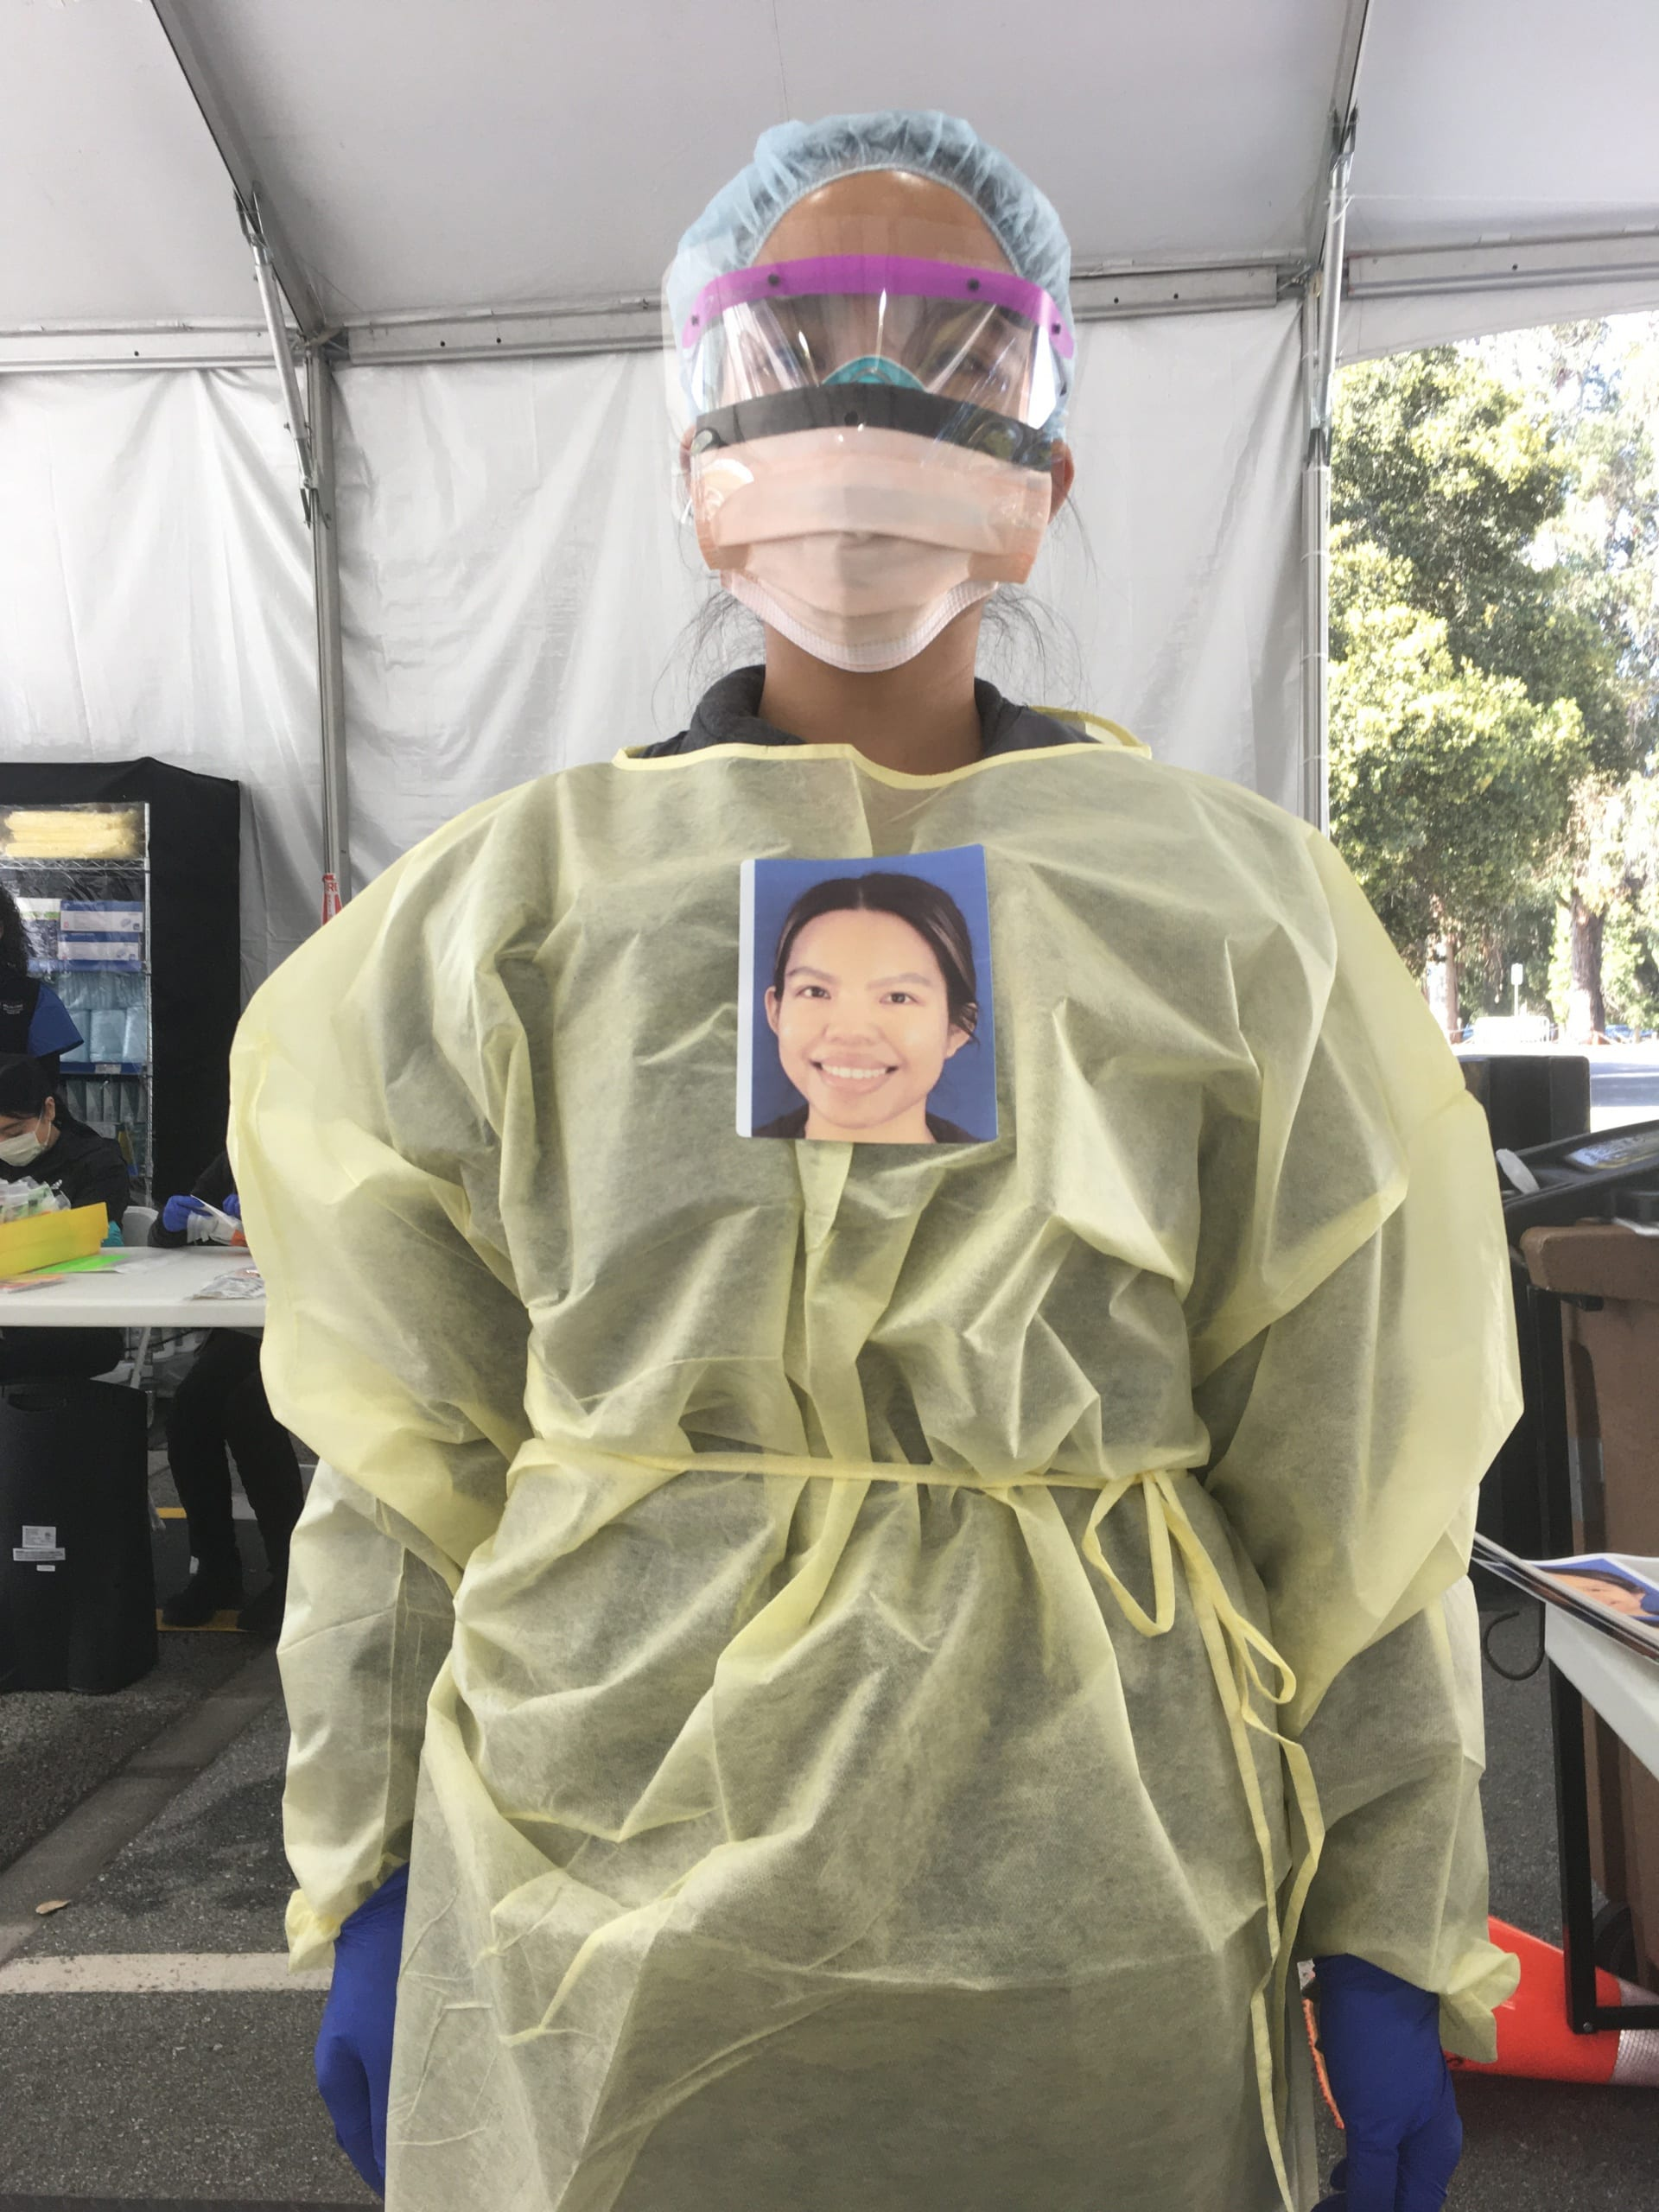 Stanford Express Care nurse Anna Chico, her head and body hidden behind layers of protective gear, wears a smiling portrait affixed over her heart so that people arriving at the COVID-19 testing clinic can see an image of her face